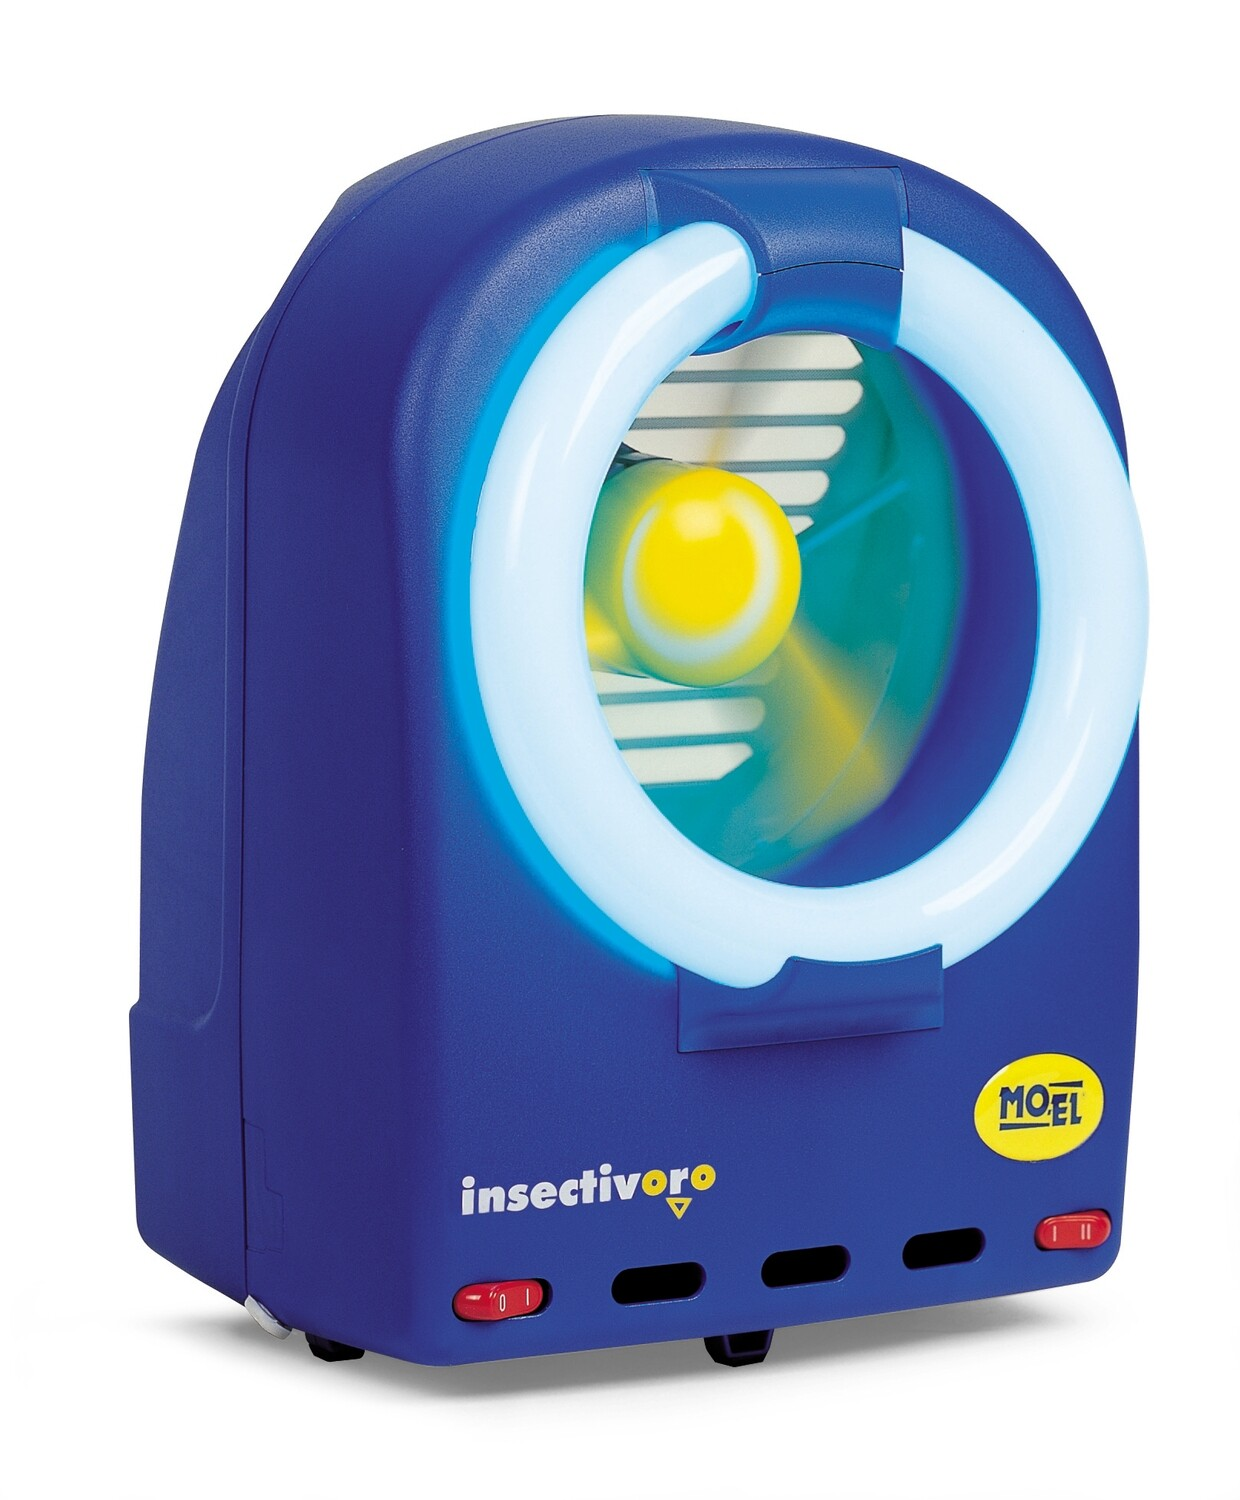 INSECTIVORO 368G Insect Fan Basic Blu